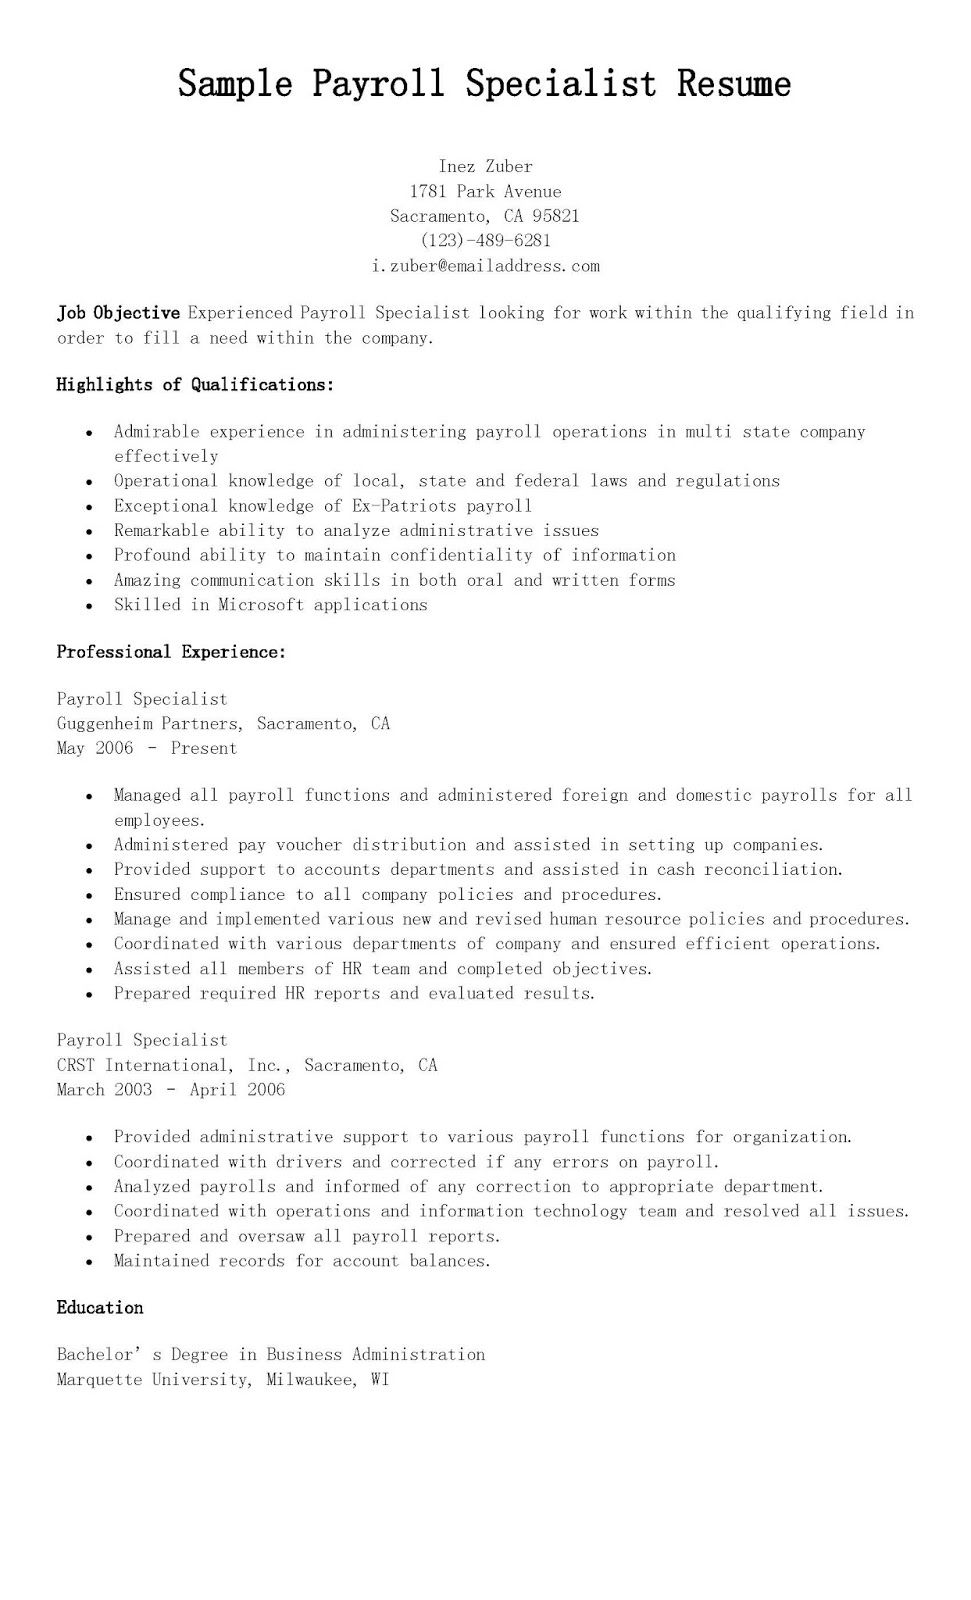 sample payroll specialist resume